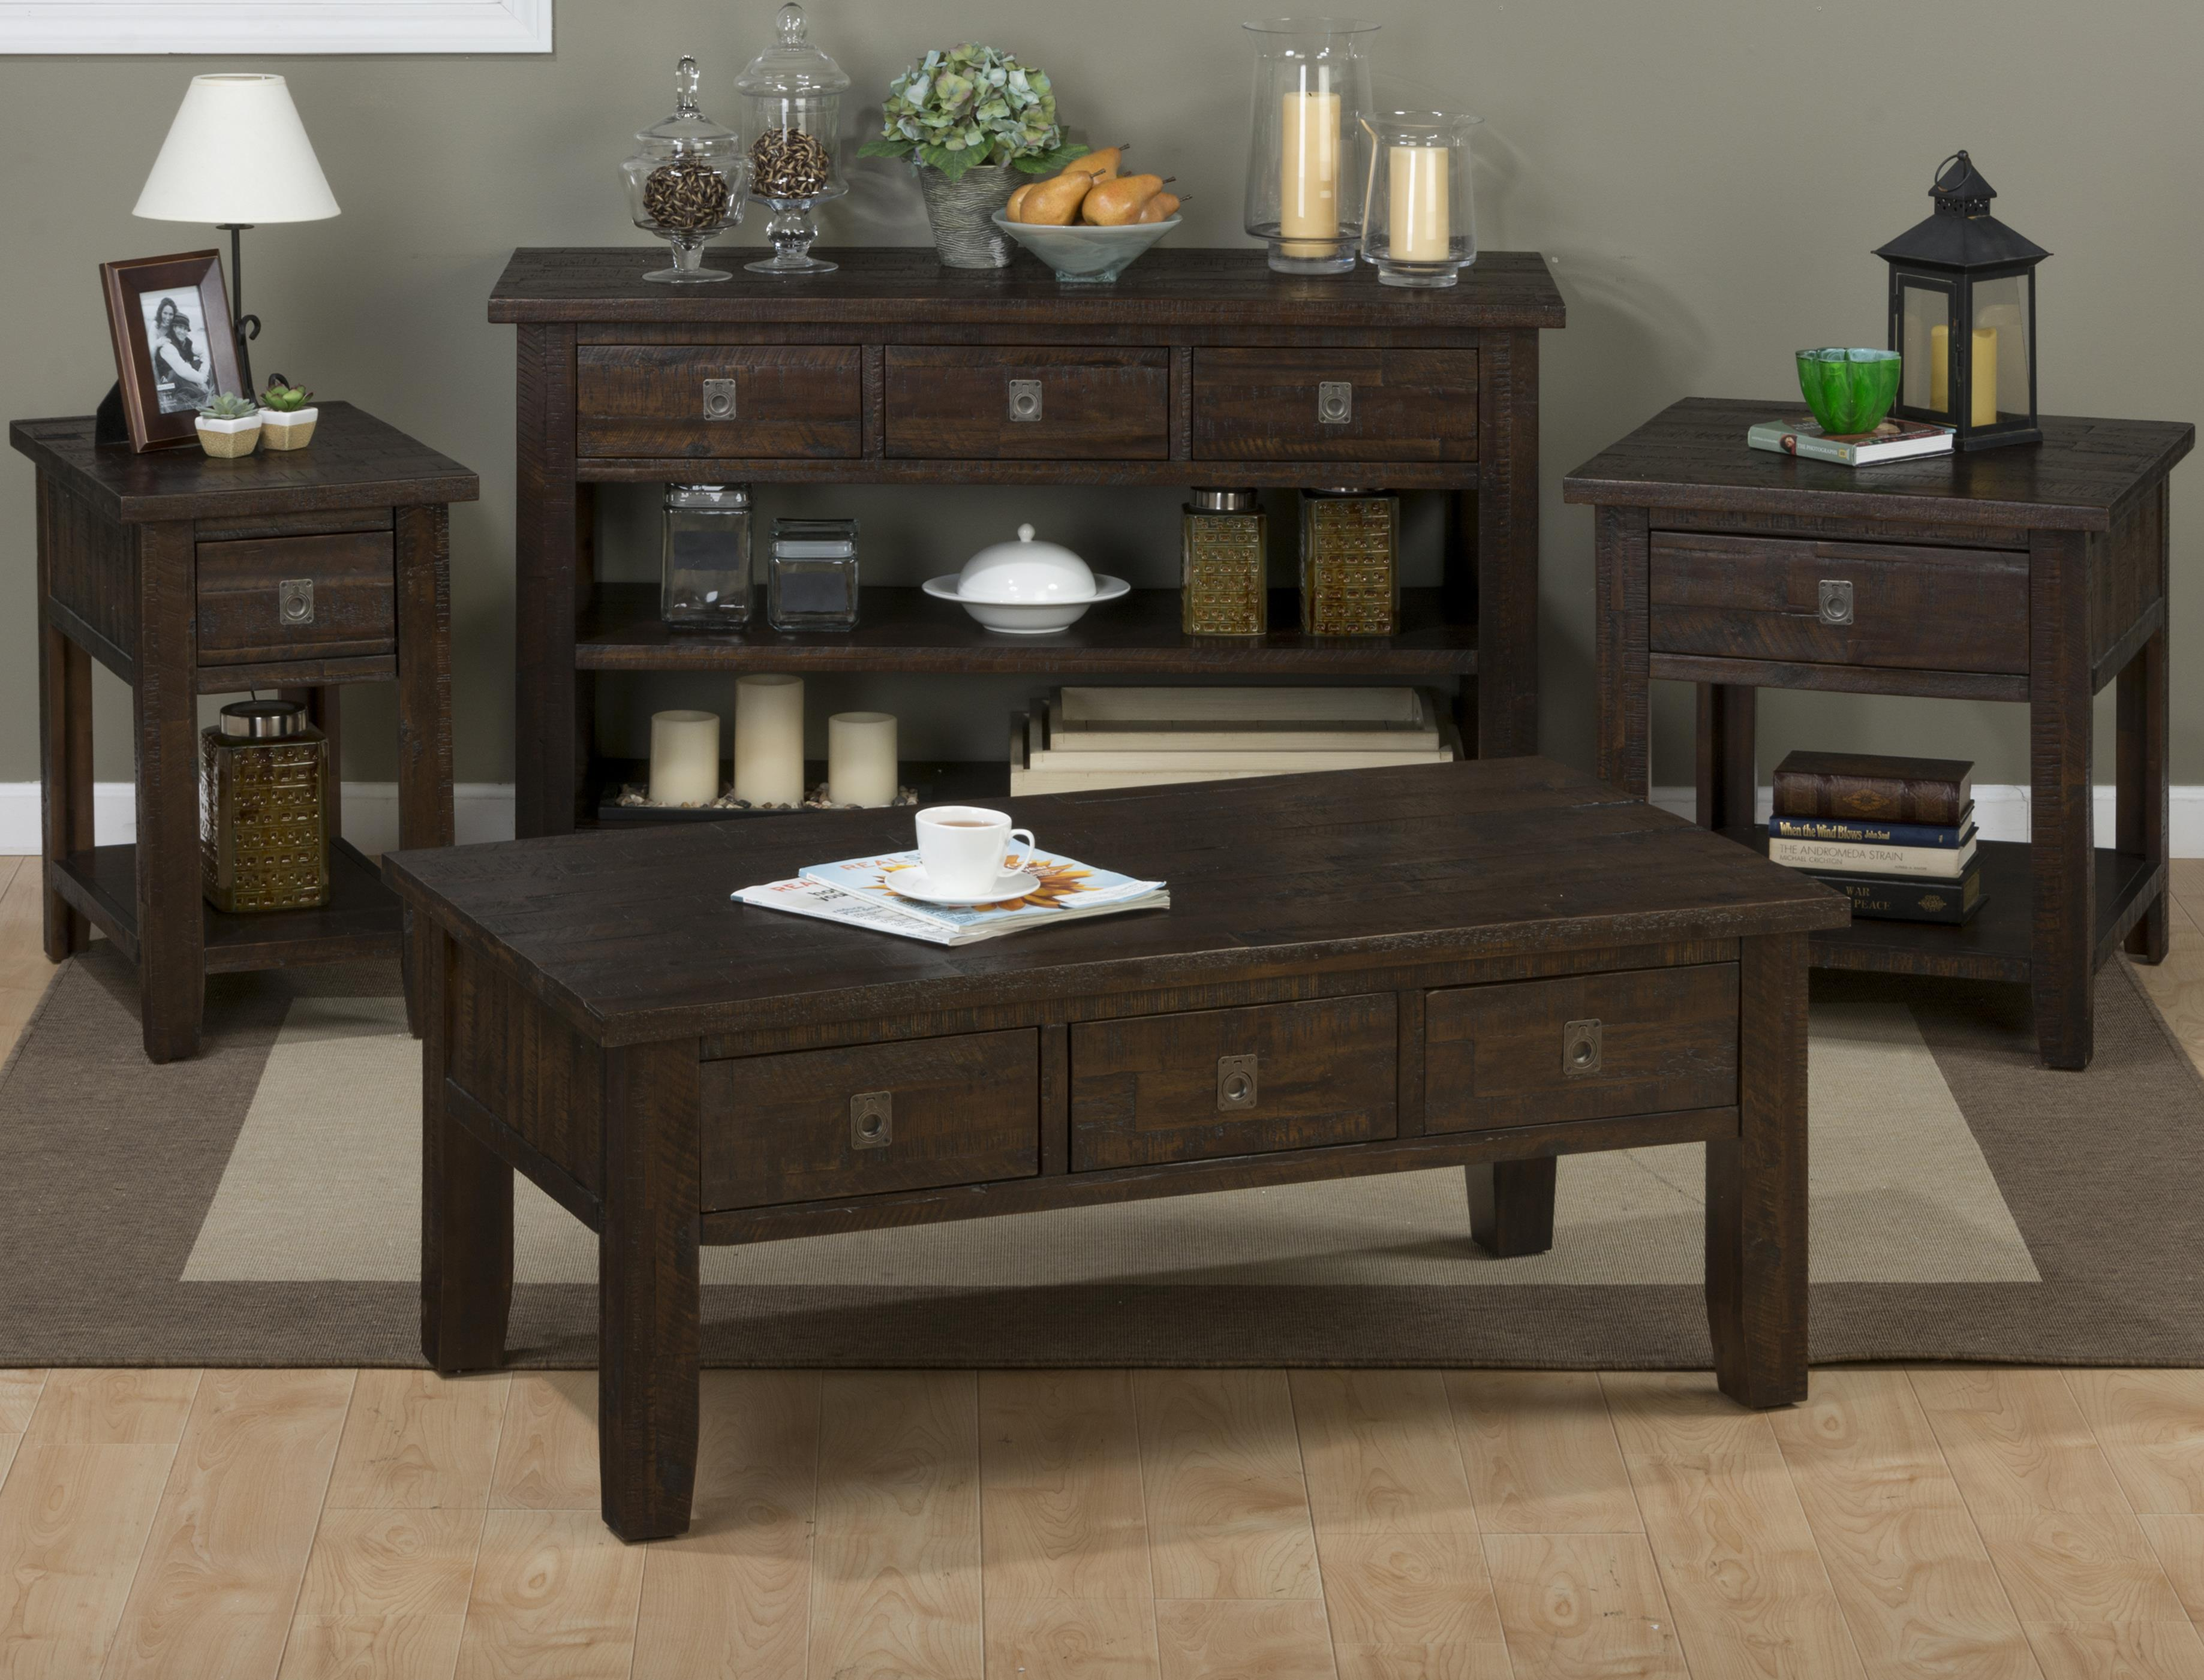 Kona Grove Occasional Table Group by Jofran at Stoney Creek Furniture